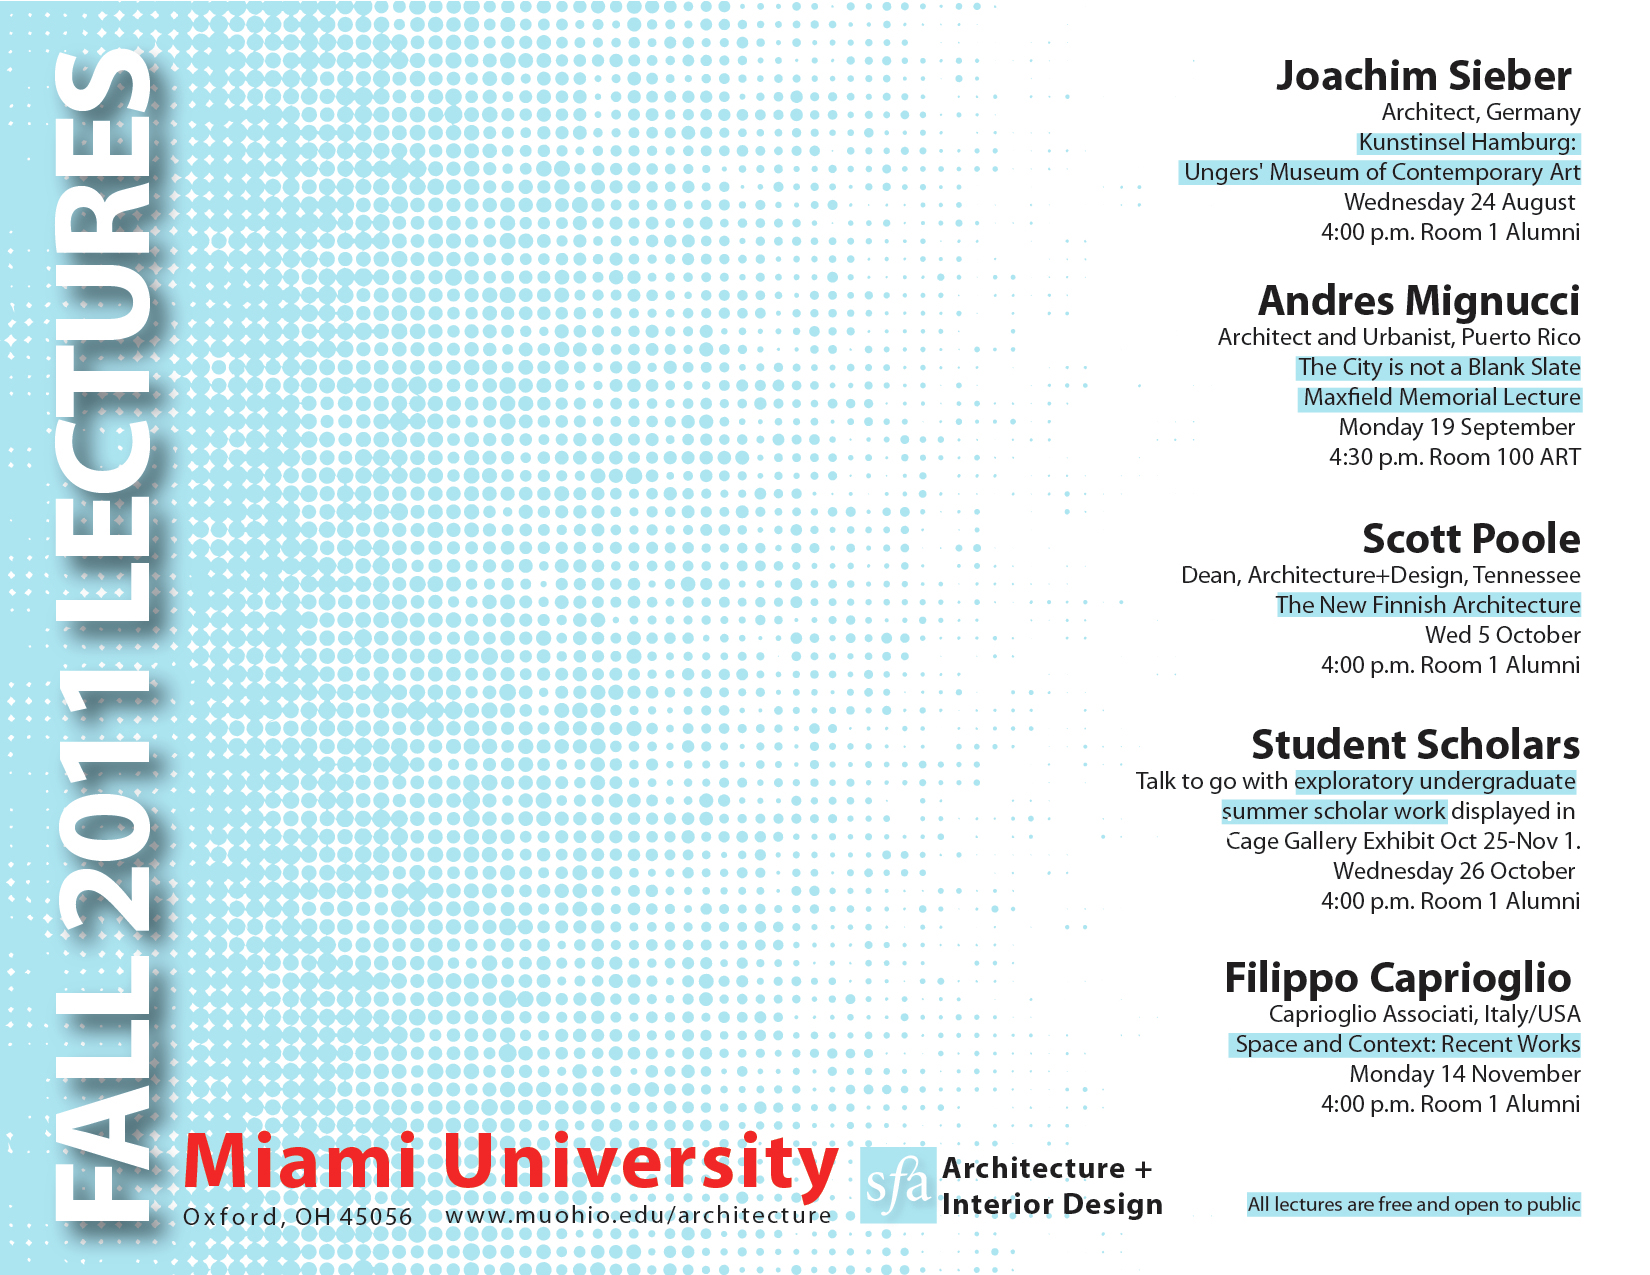 Miami University Fall 11 Architecture And Interior Design Lecture Series Archdaily